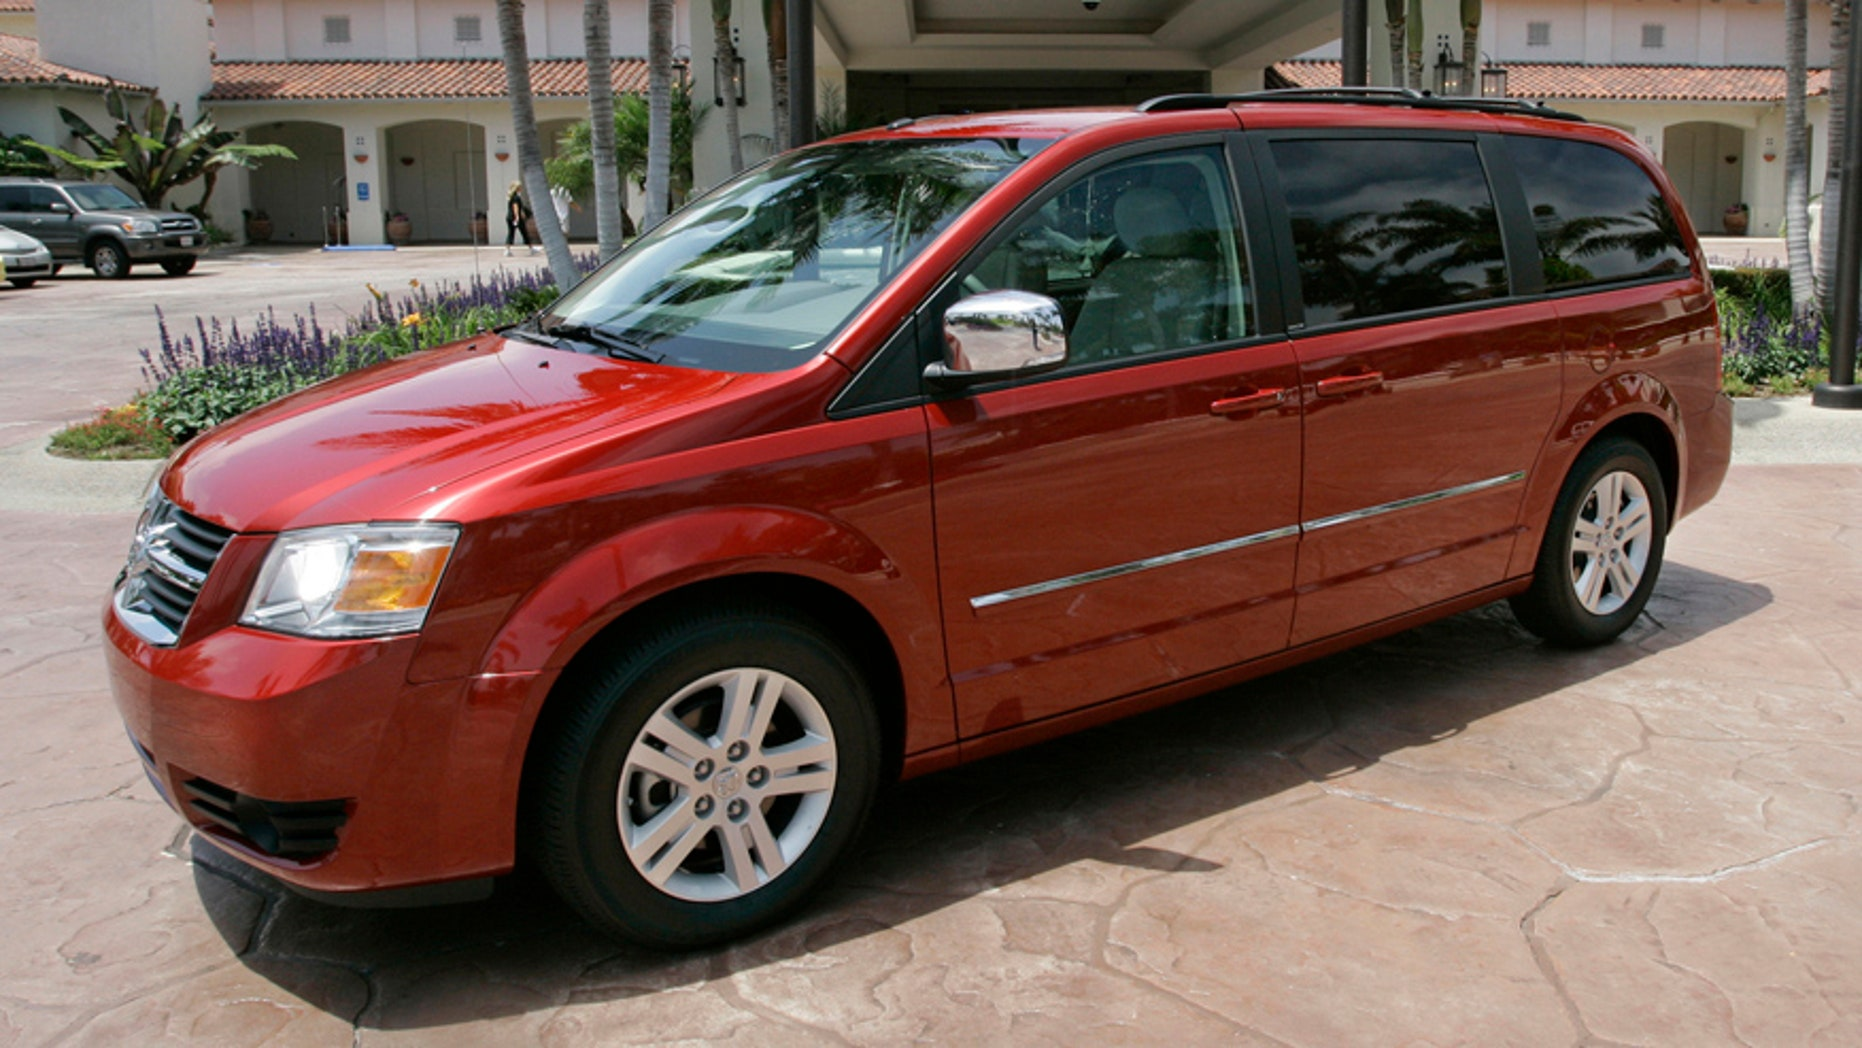 FILE - This July 17, 2007 file photo shows the 2008 Dodge Grand Caravan at the Four Seasons Hotel in Carlsbad, Calif. On Wednesday, June 18, 2014, the National Highway Traffic Safety Administration posted documents on its website detailing an investigation of about 700,000 Dodge Journey SUVs and Chrysler Town and Country and Dodge Grand Caravan minivans from the 2008 to 2010 model years. The agency wants to see if the keys can fall out of the run position under harsh roadway conditions. (AP Photo/Lenny Ignelzi, File)